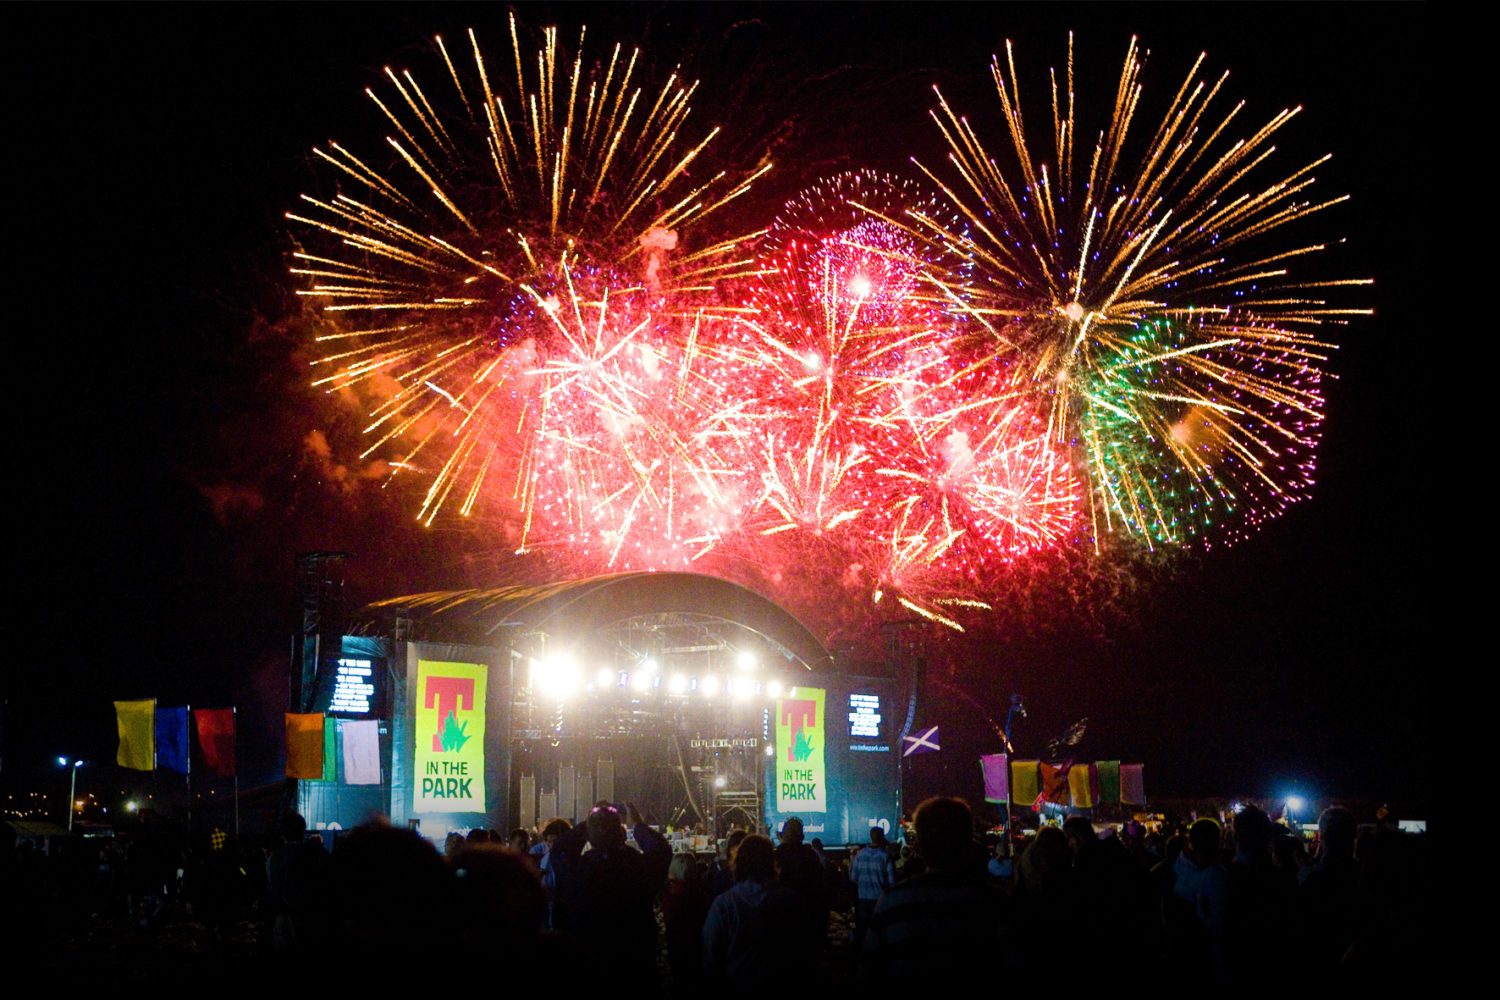 21cc fireworks t in the park festival finale fireworks